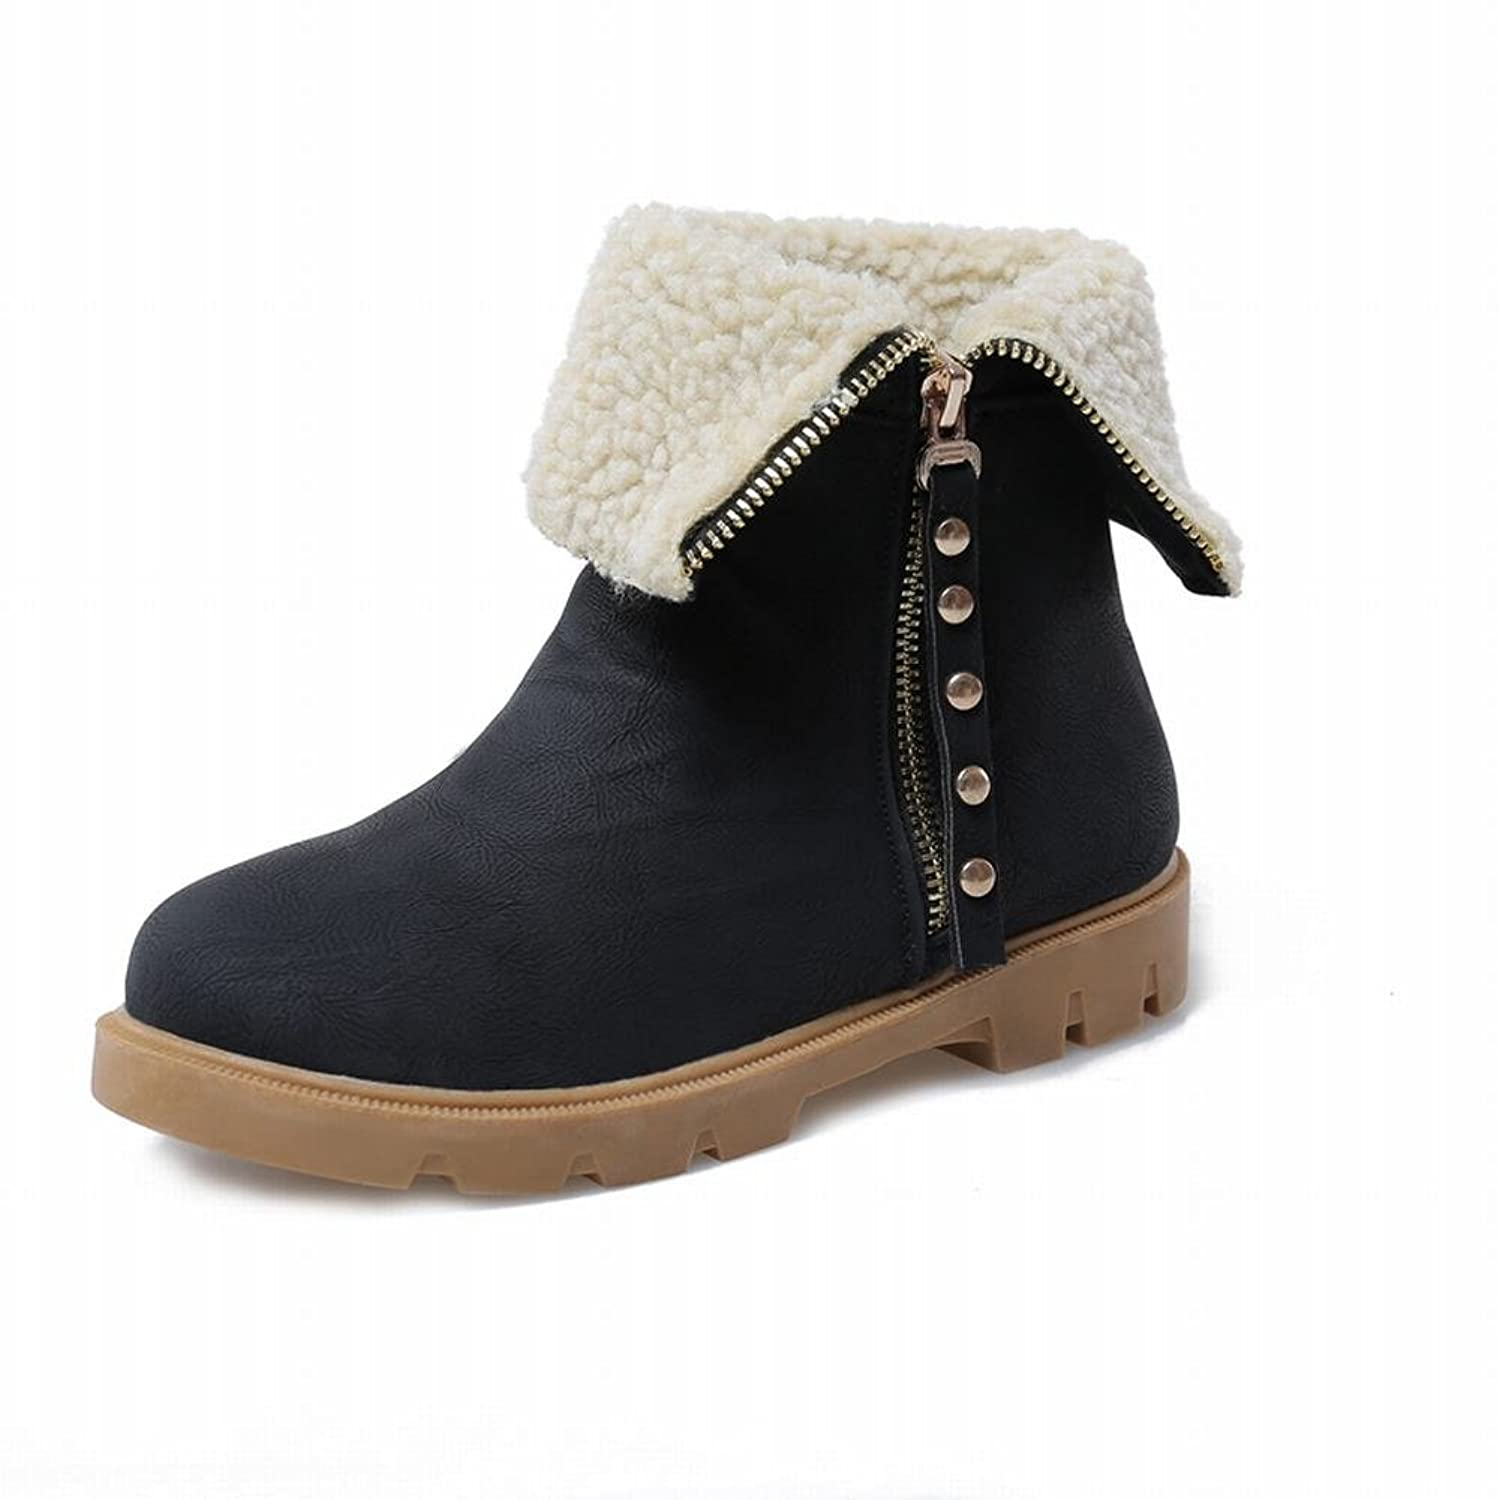 Show Shine Women's Fashion Fold Over Zipper Ankle Boots Flats Boots Snow Boots